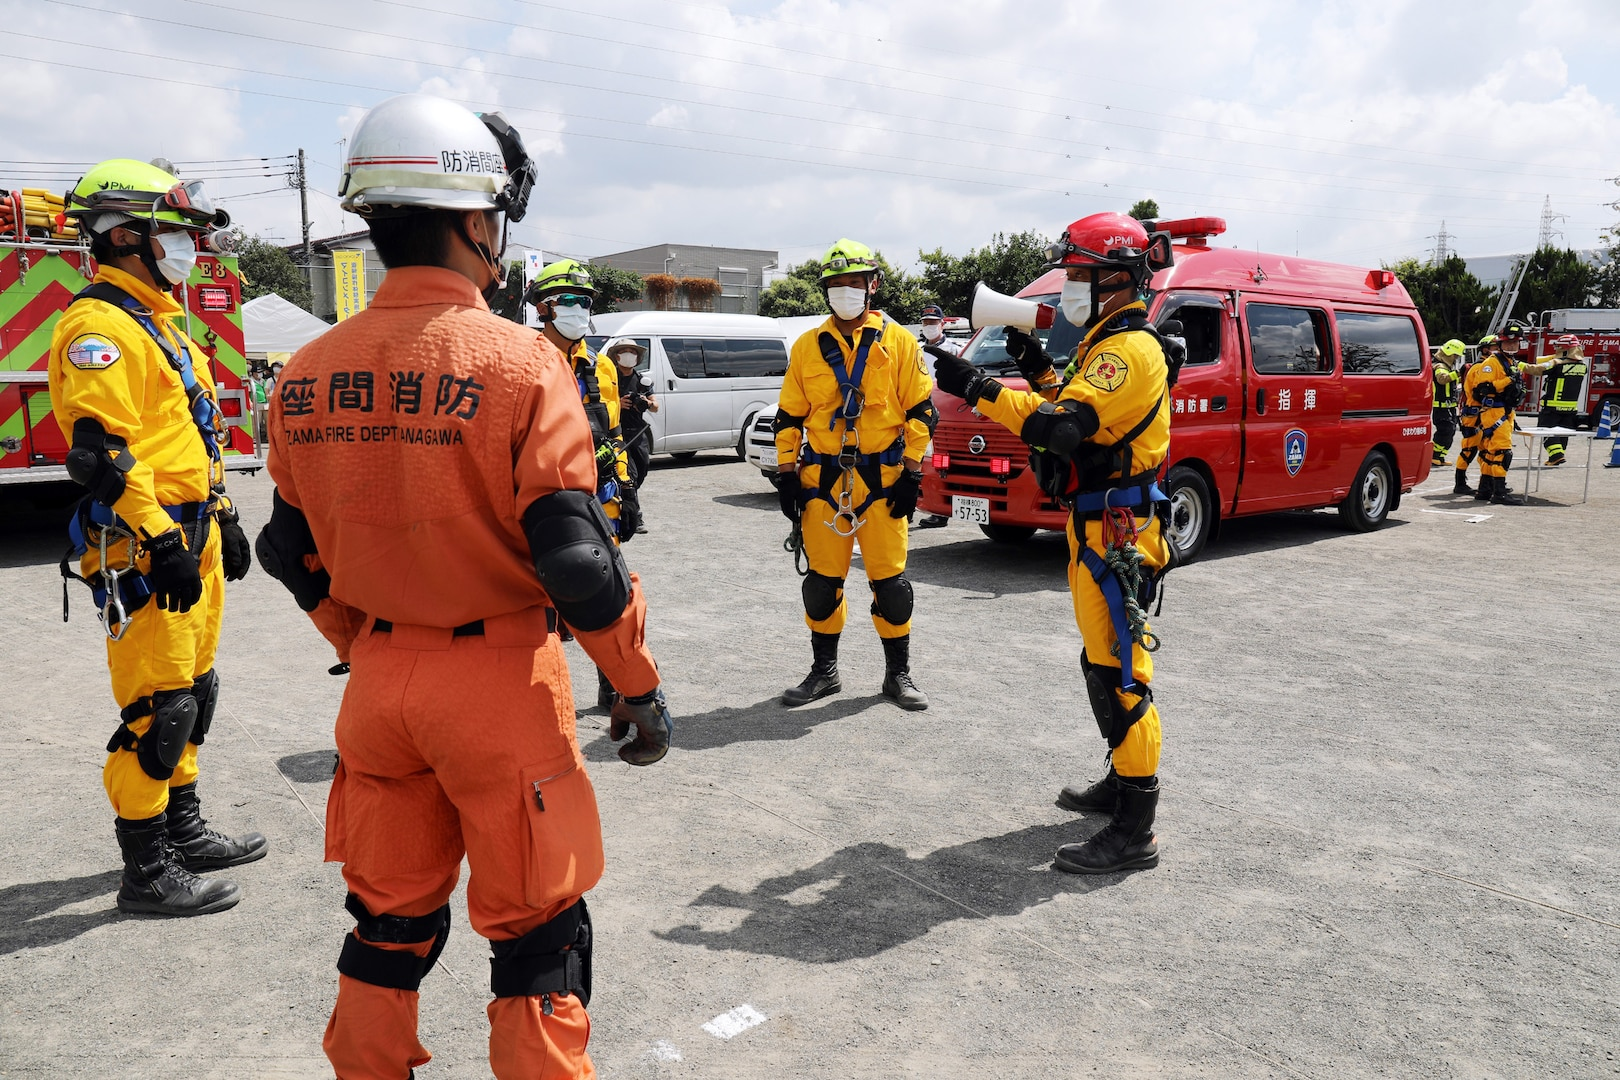 USAG Japan Fire Department named best in Army in 'large department' category